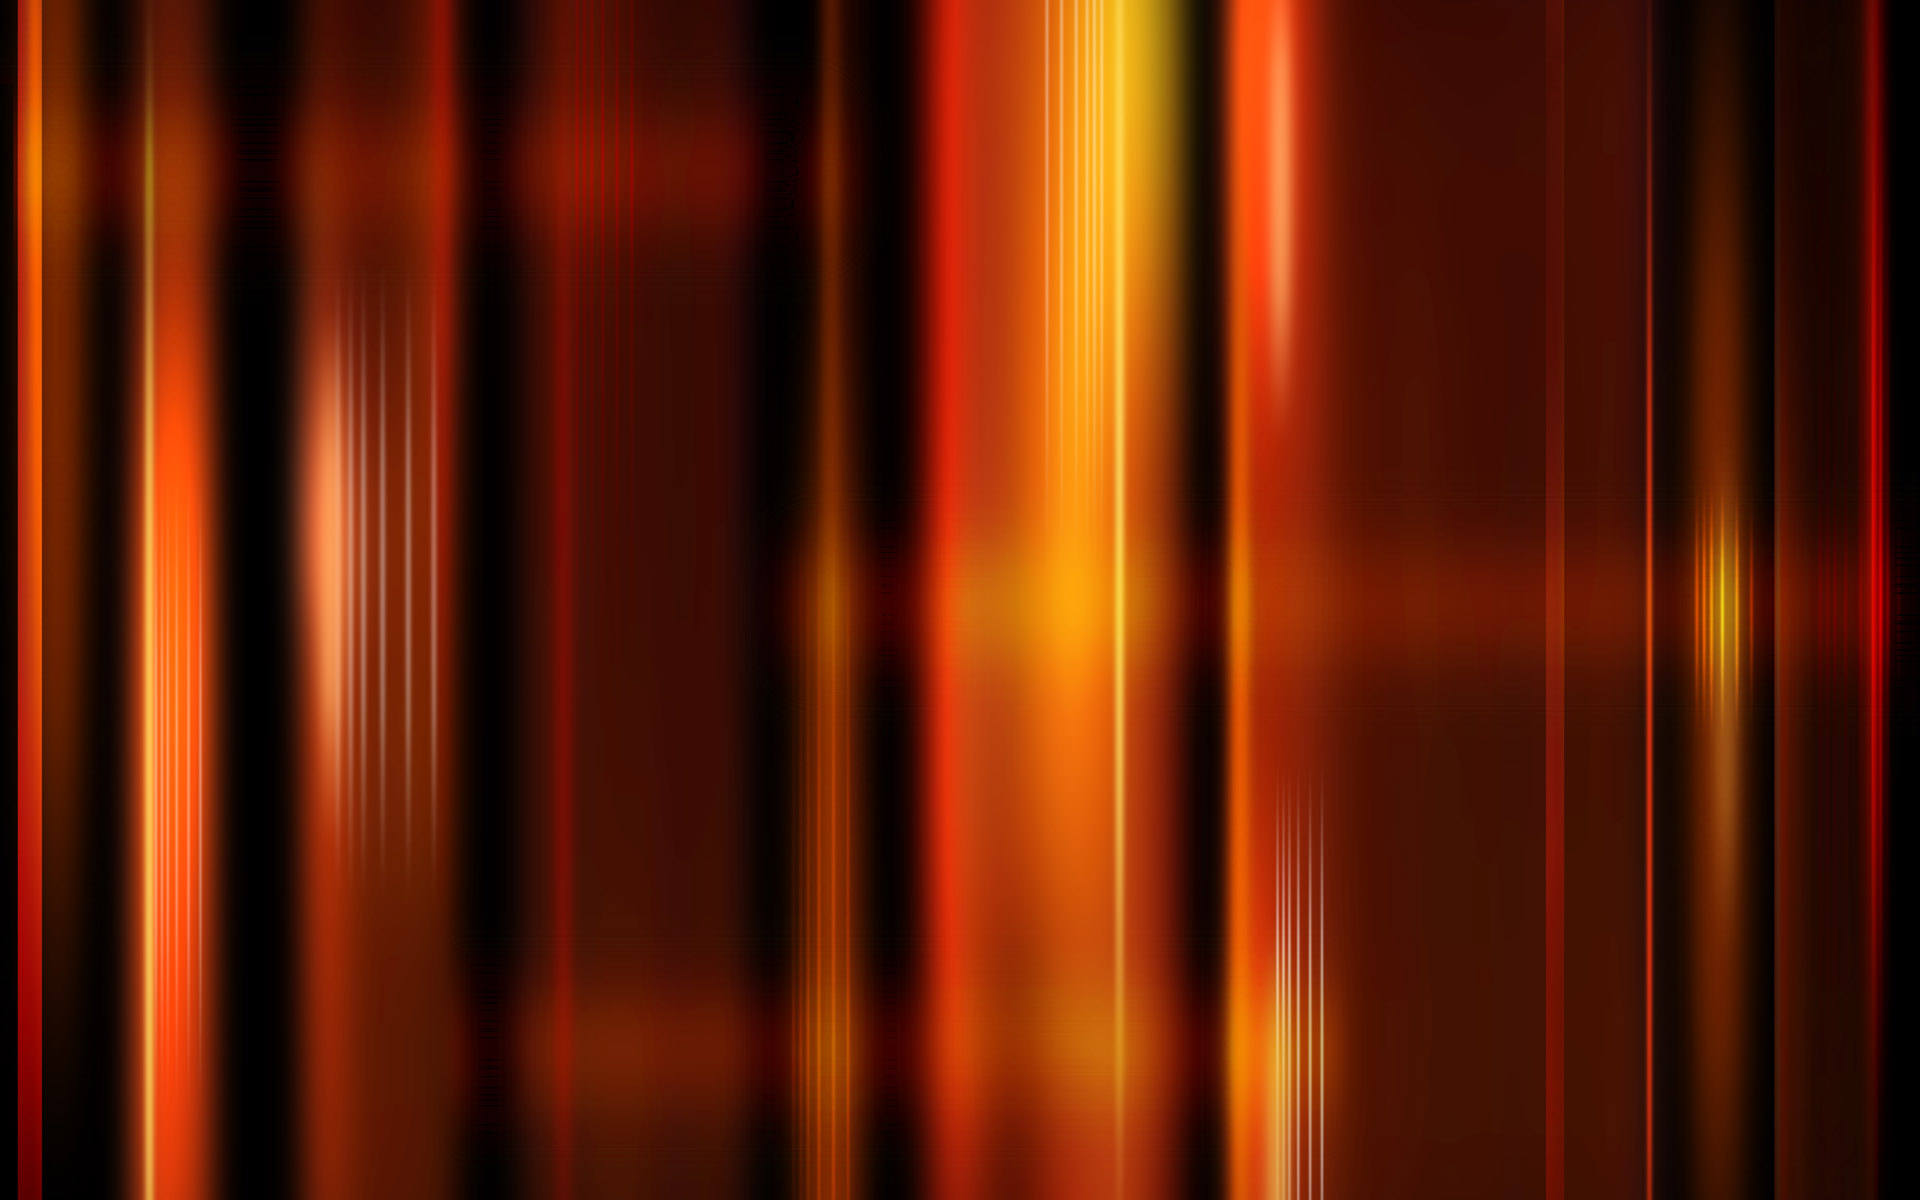 Colorful background of high-definition 20634